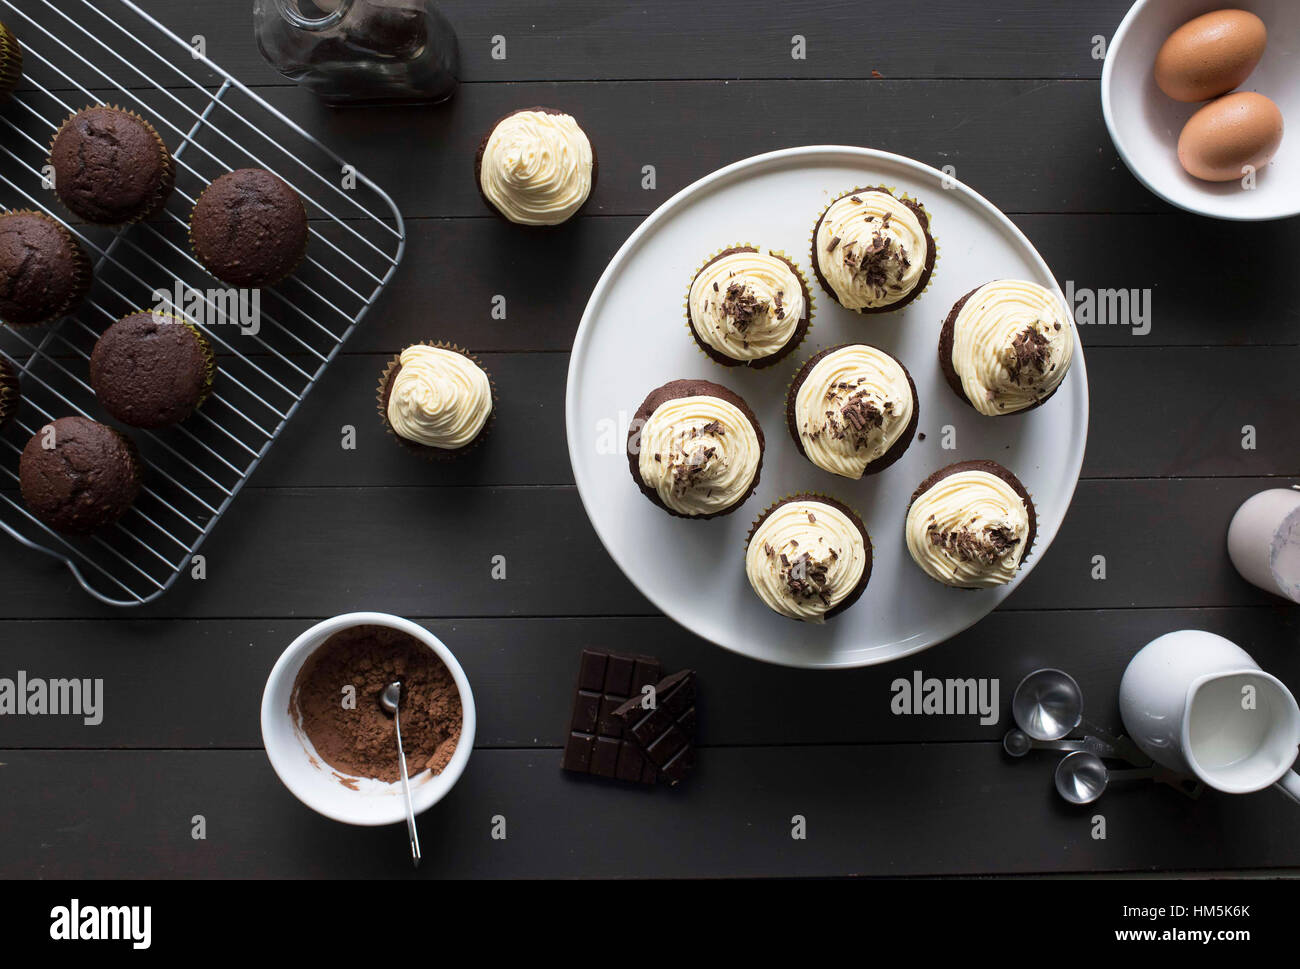 High angle view of cupcakes and chocolate chip muffins on table - Stock Image